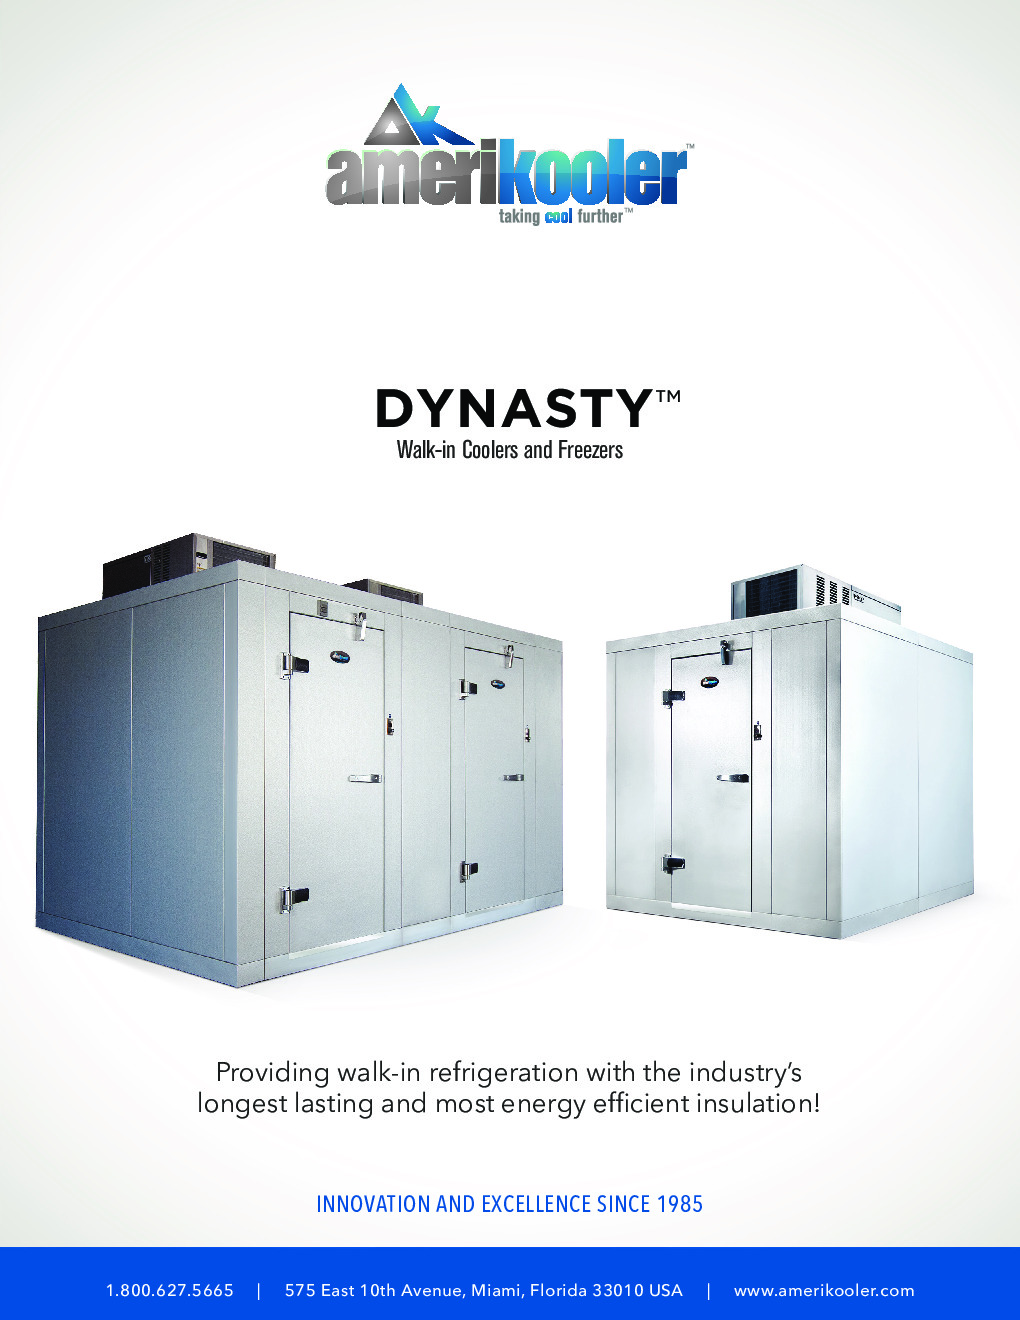 AmeriKooler DW101577N-6/9-RM 10' X 15' Walk-In Cooler, 9' L Cooler without Floor and 6' L Freezer, Remote